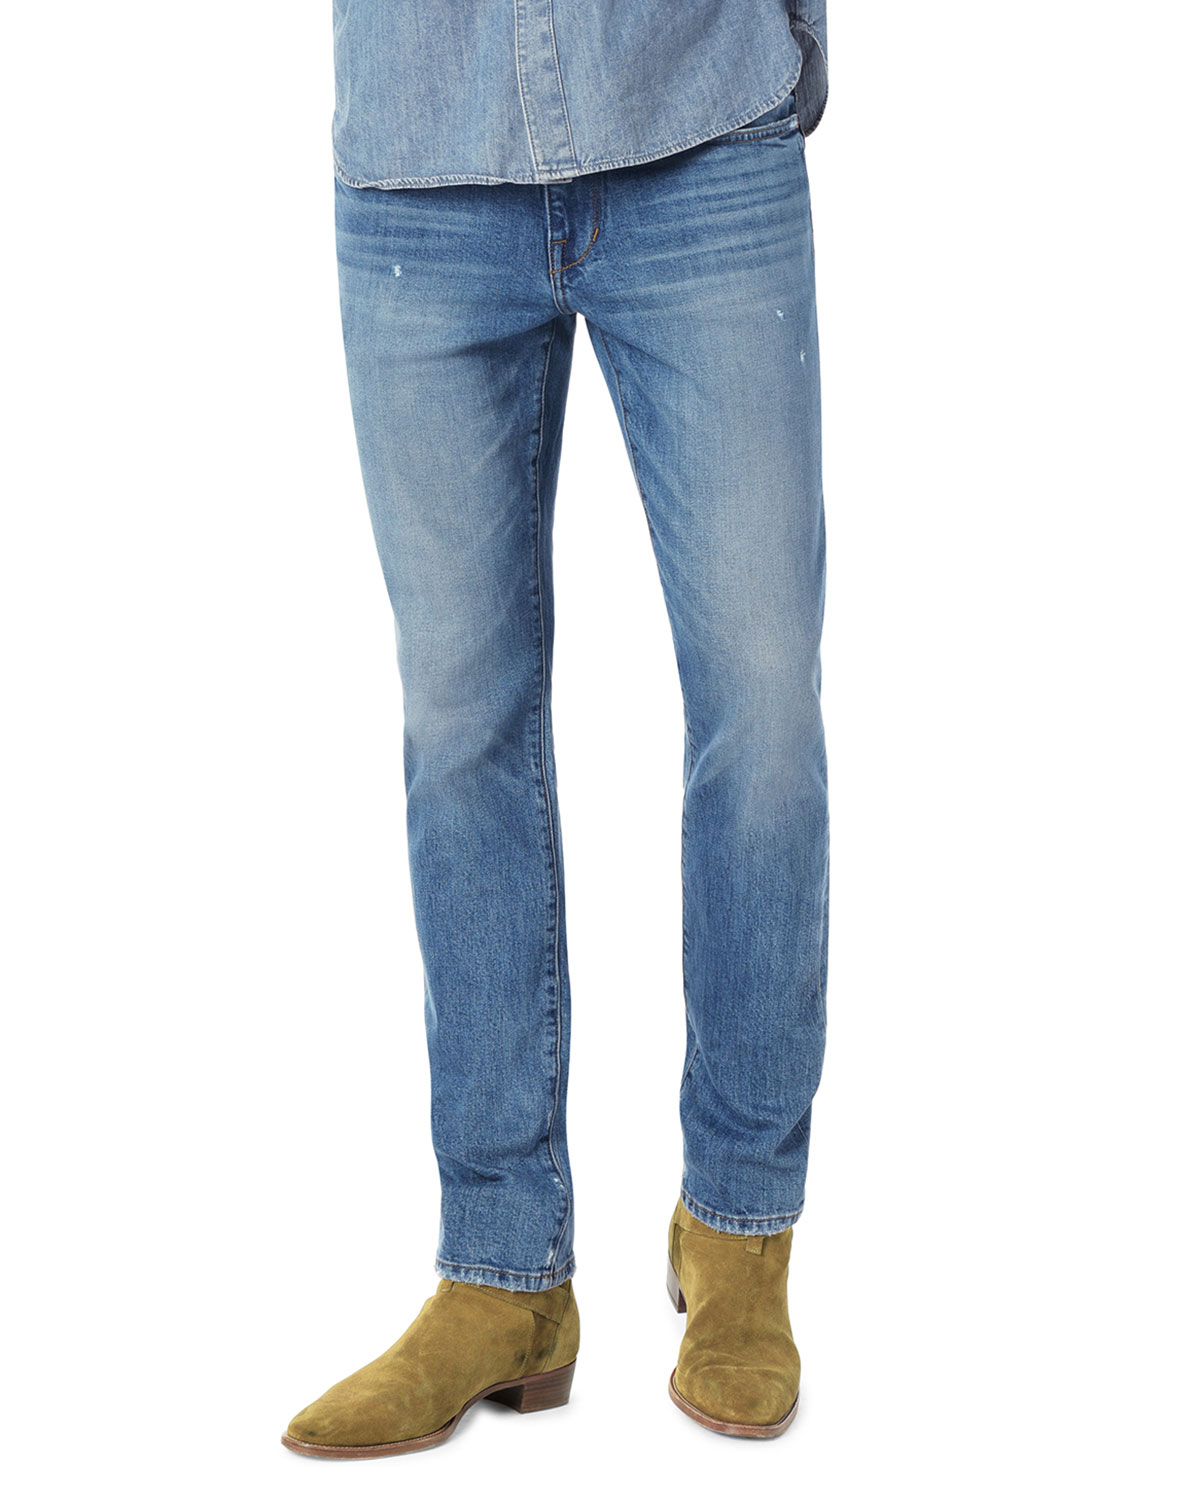 Joes Jeans Mens The Asher Slim Fit